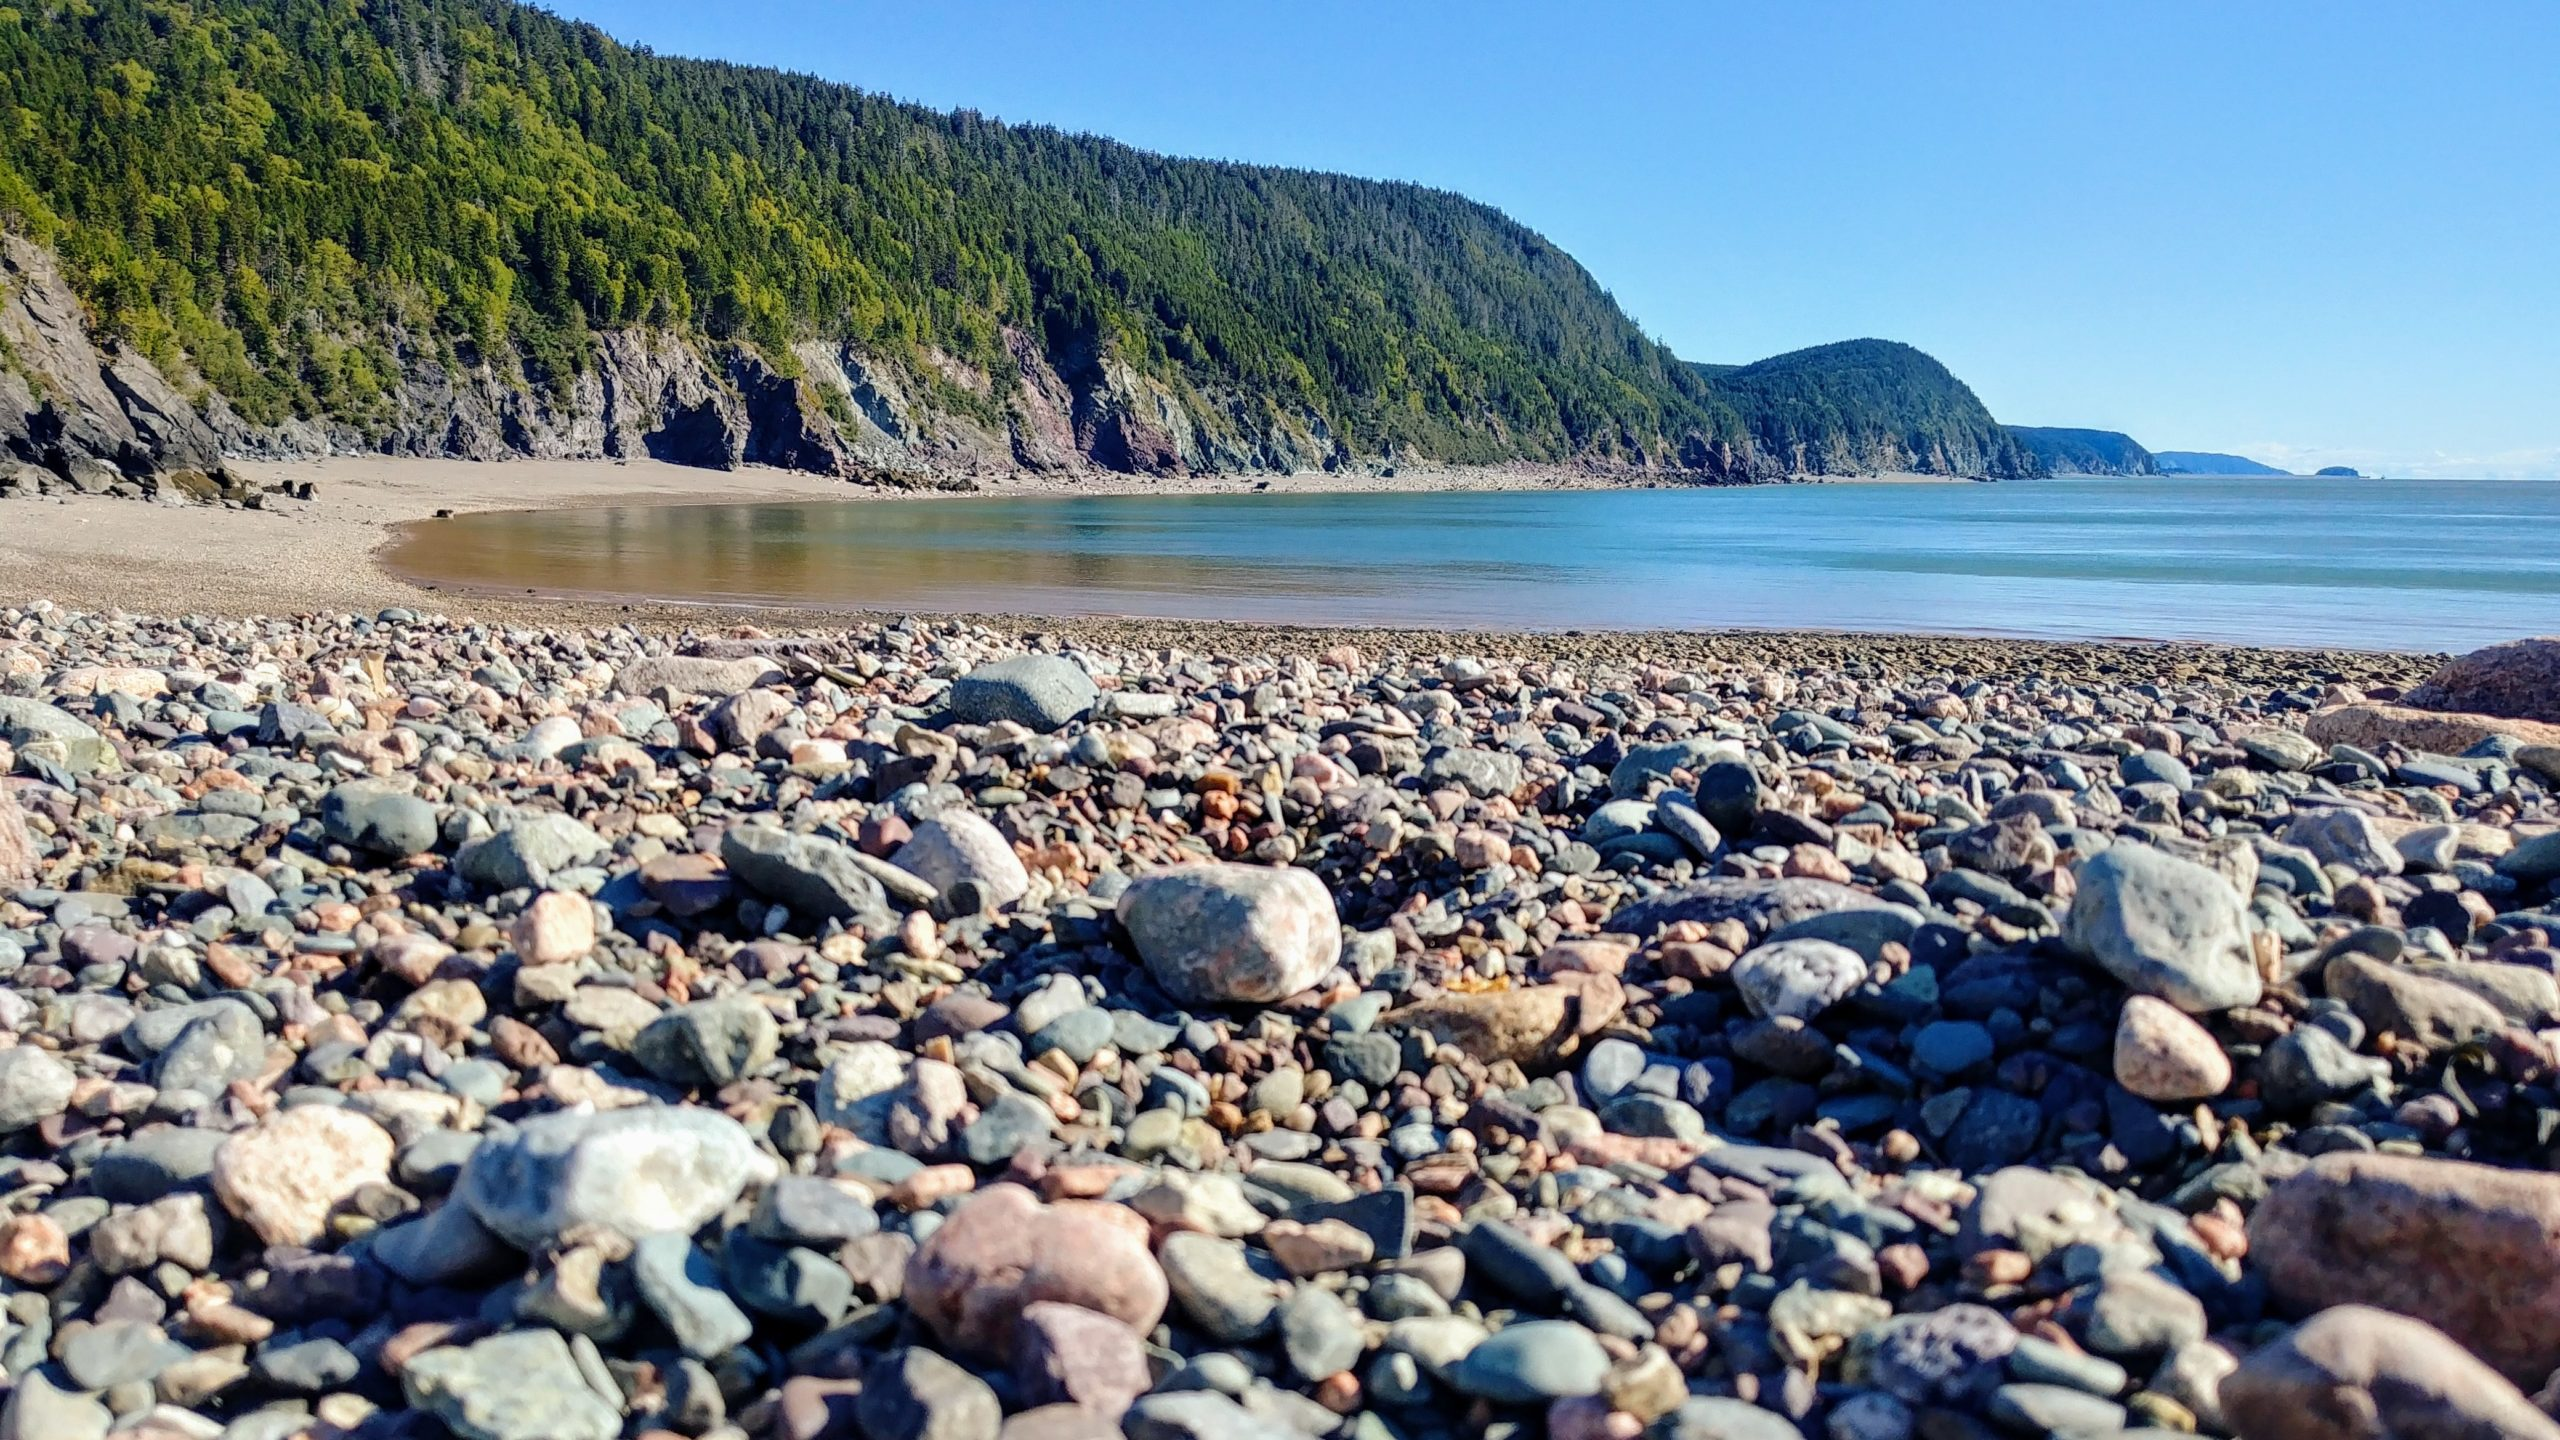 St Martins Fundy Trail Parkway randonnée plage Seely blog voyage Canada arpenter le chemin